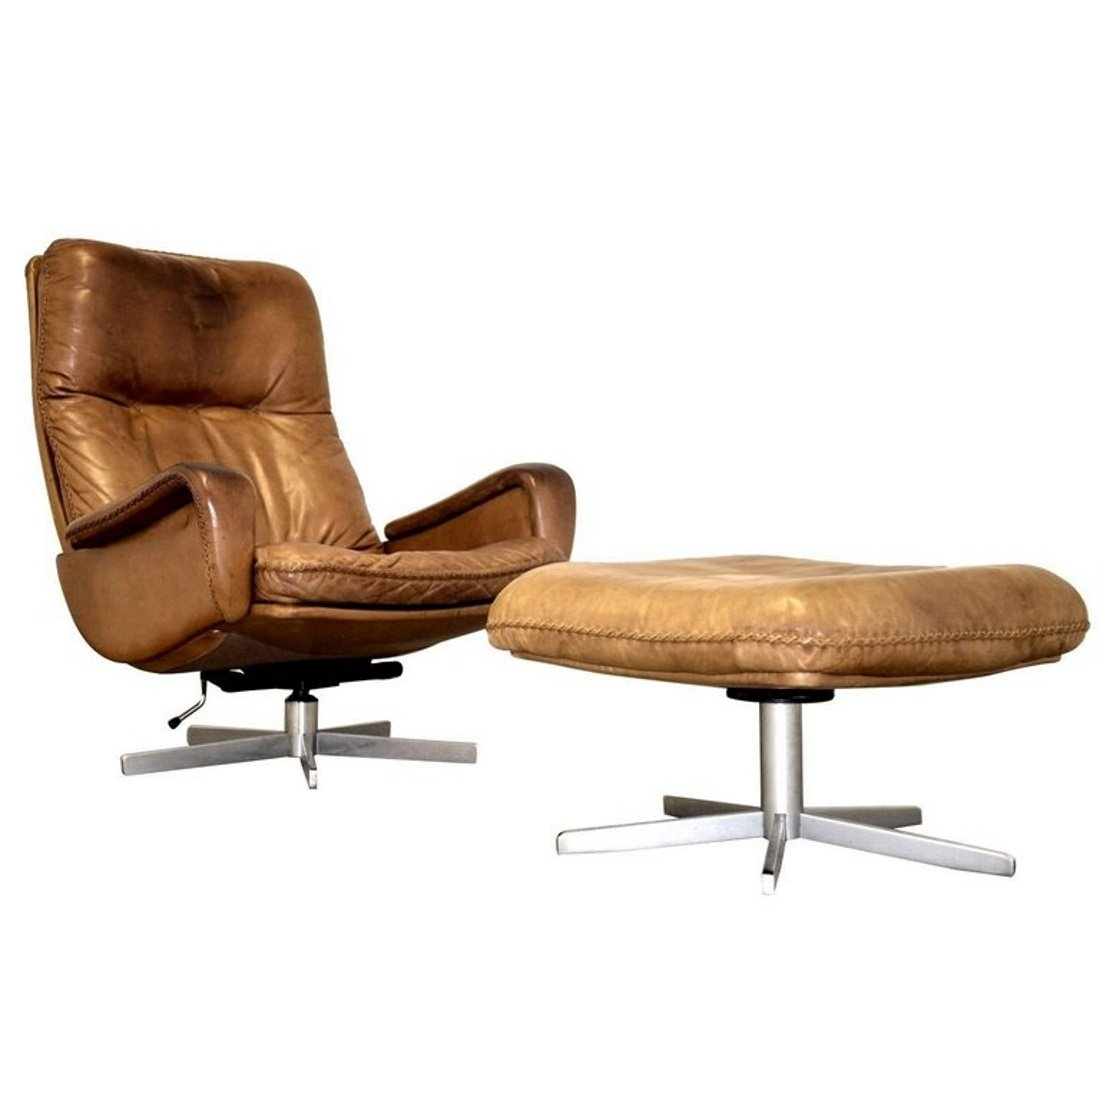 S 231 Swivel Armchair with Ottoman from De Sede 1960s for sale at